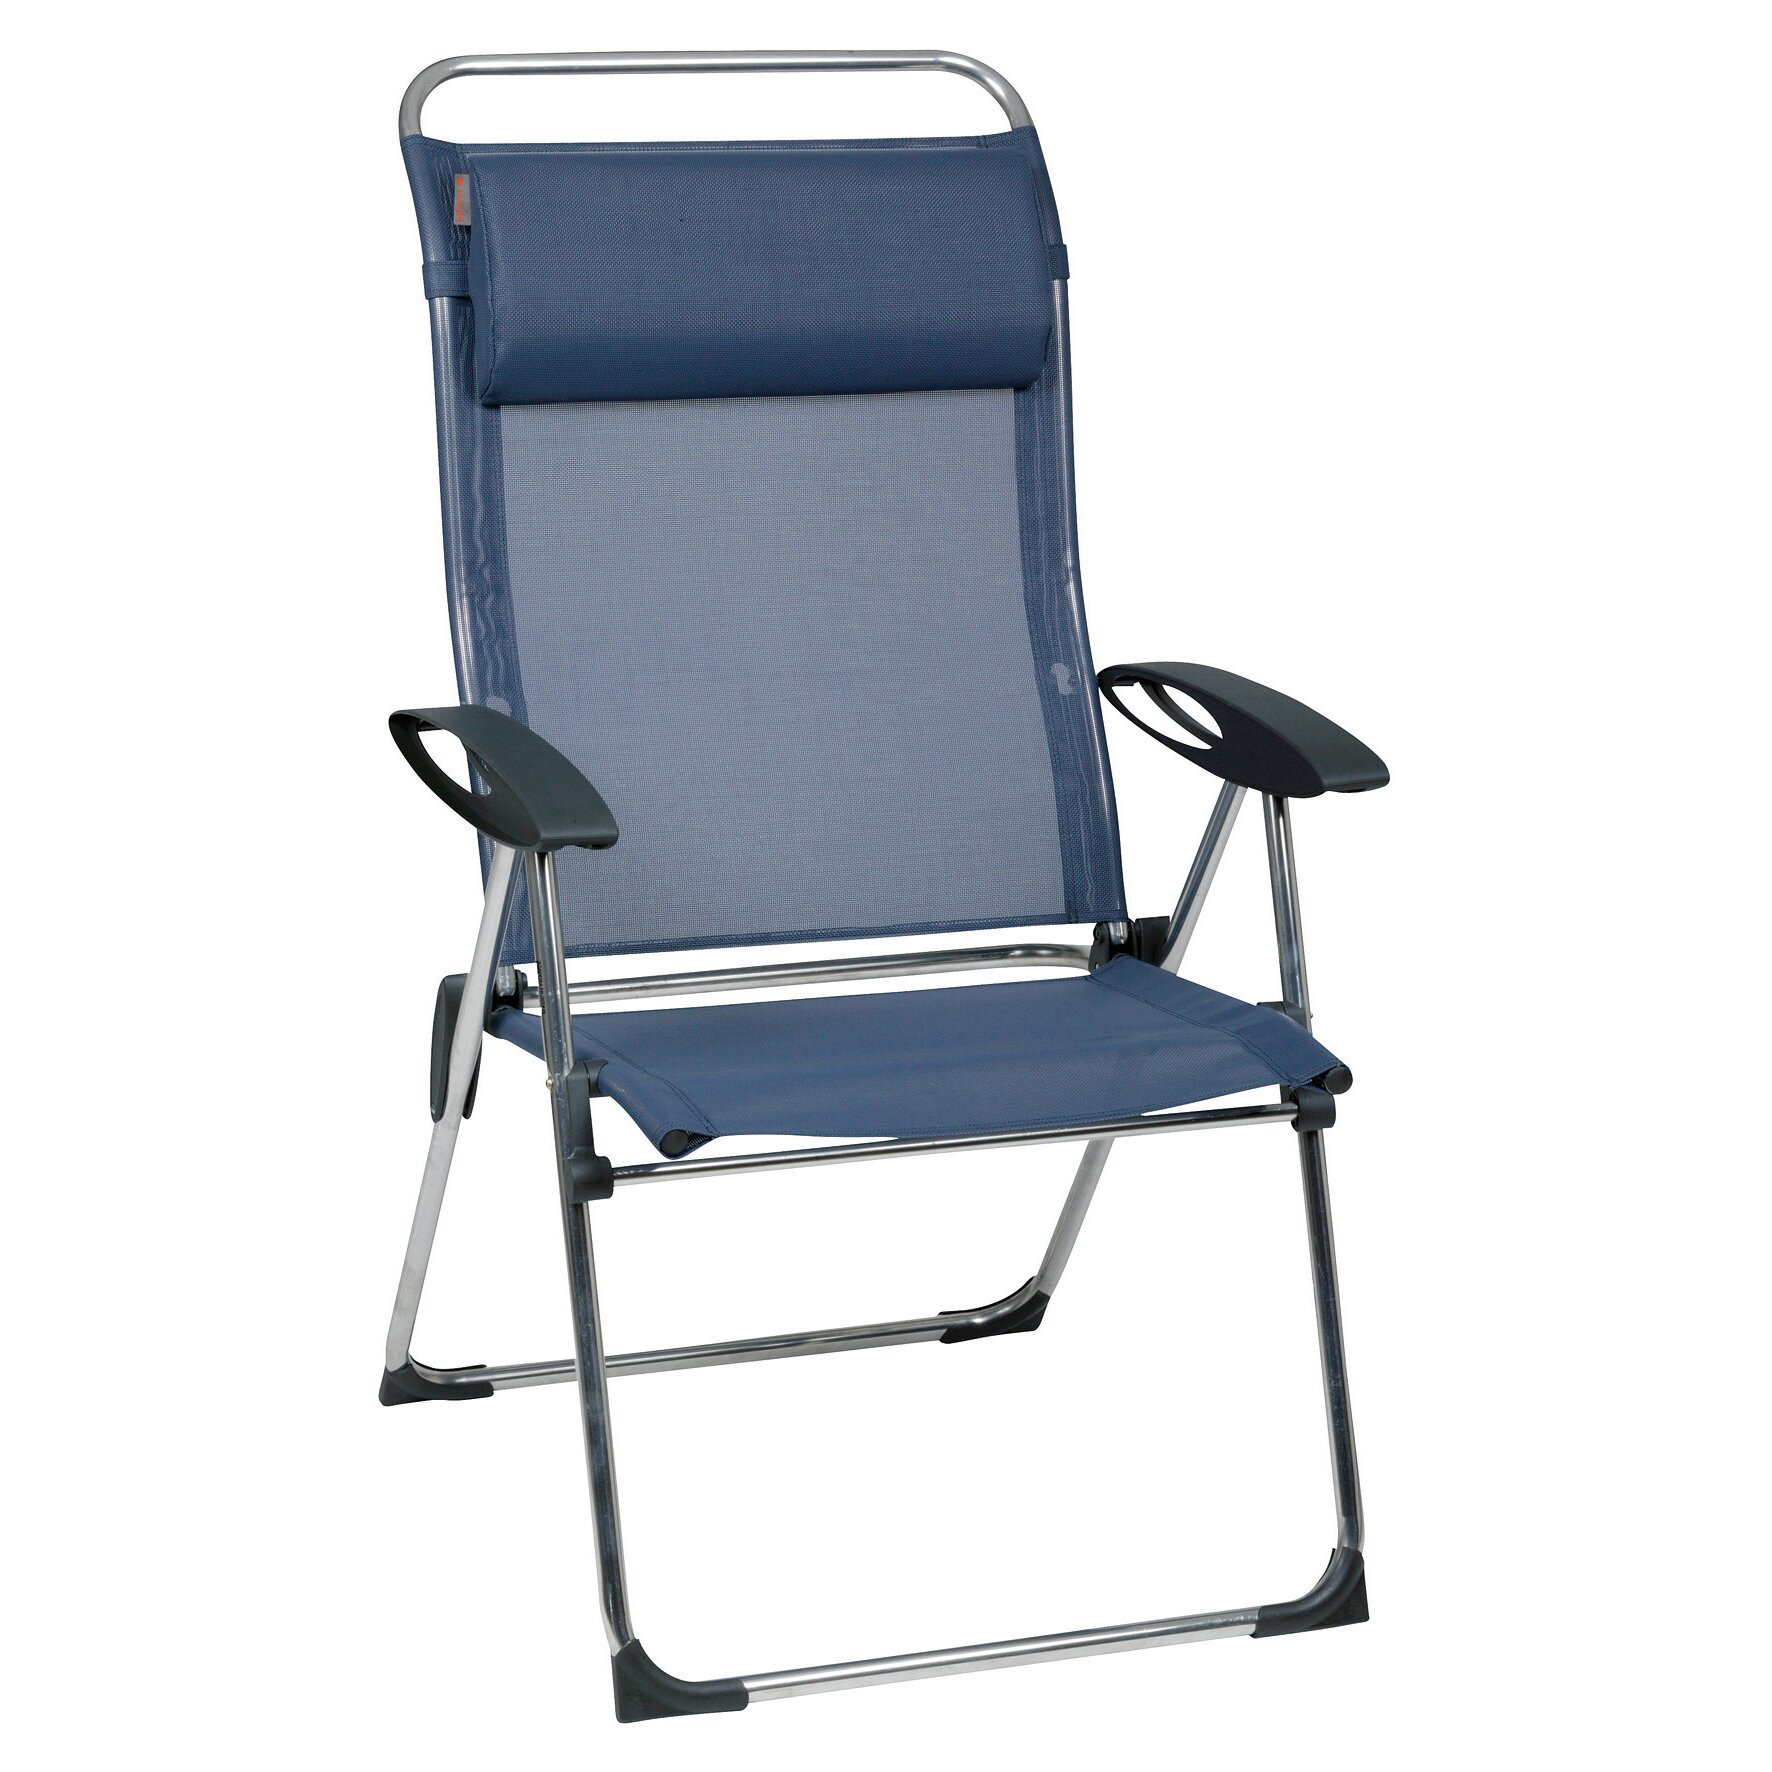 Folding Chairs With Table On The Side Images Ikea Decorating – Alpine Zero Gravity Chair